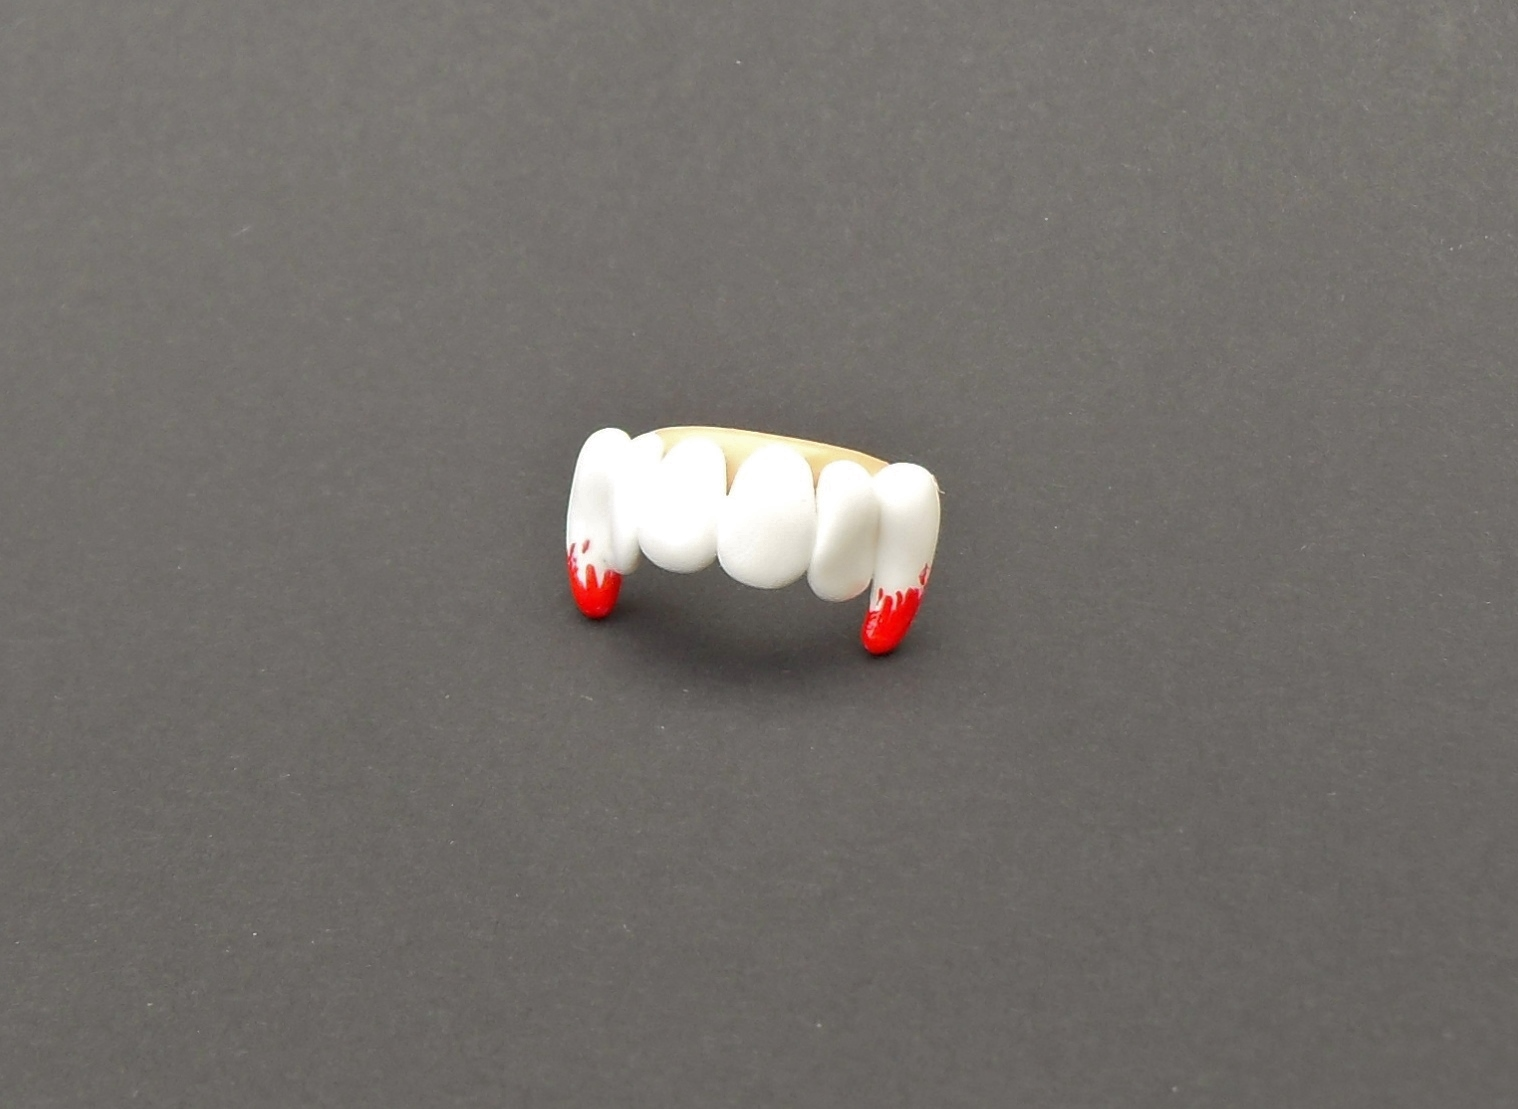 Halloween, spooky, creepy, cute, trick or treat, horror, handmade, novelty, season, kitsch, fan, jewellery, accessories, quirky, vampire, blood, grill, teeth, ring,